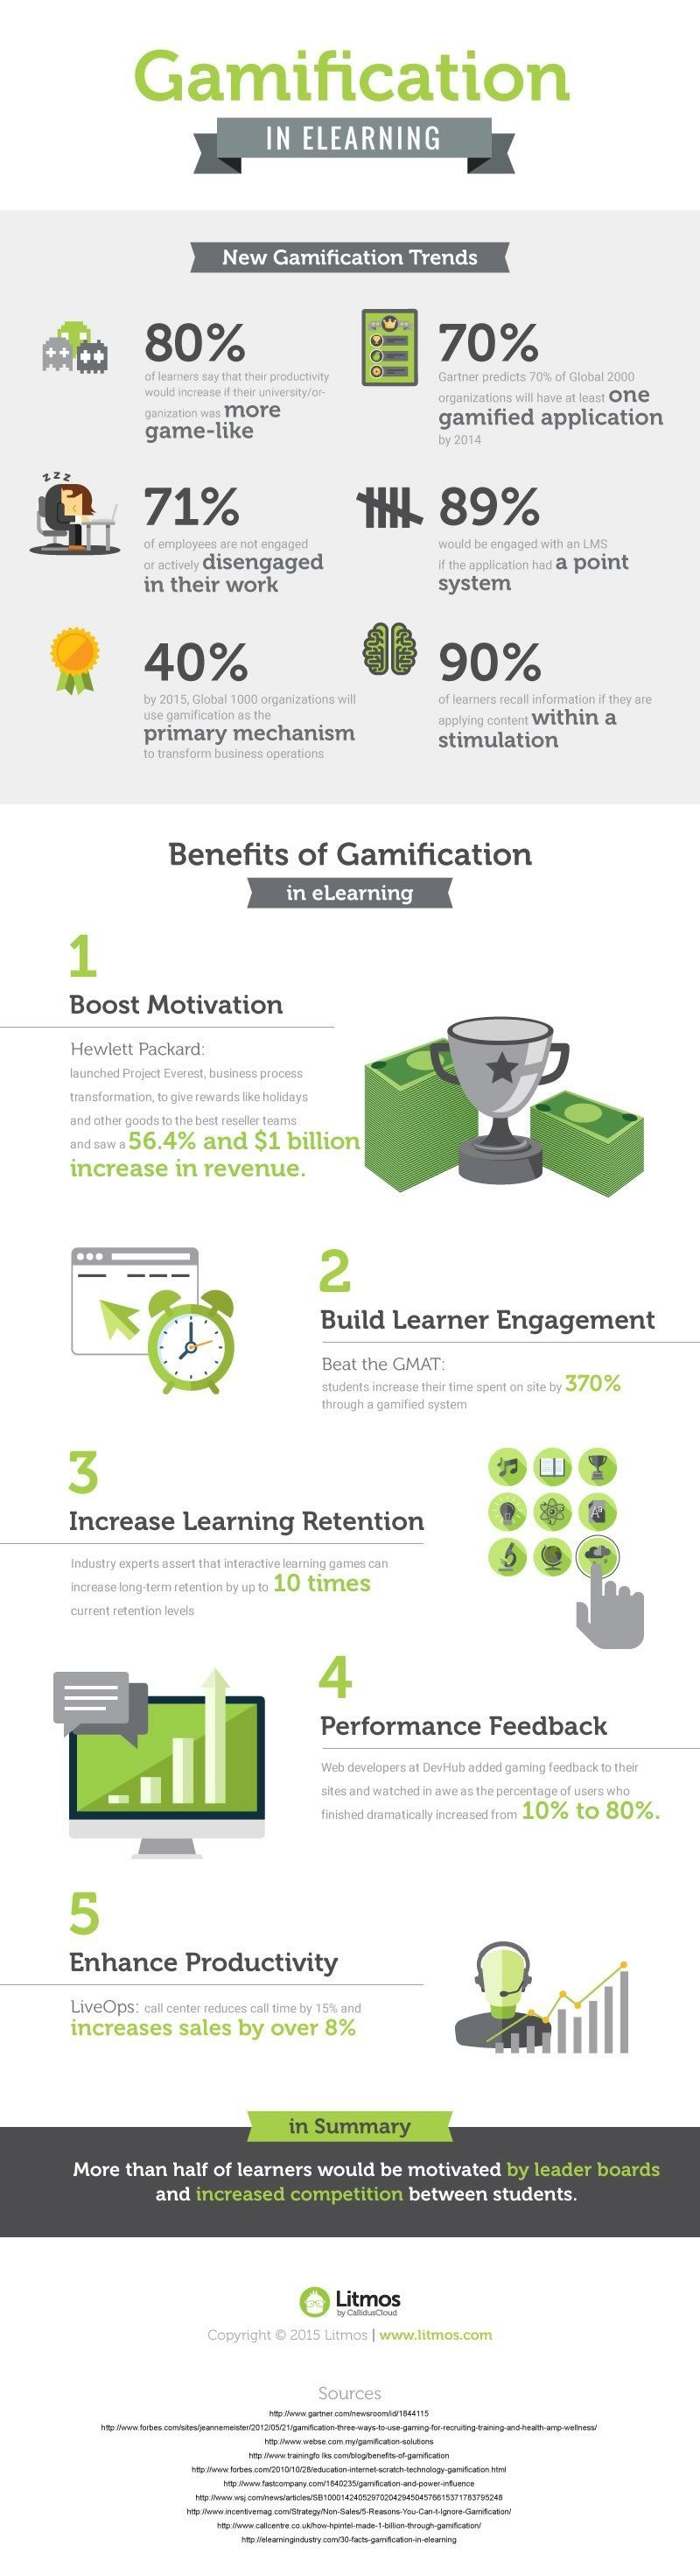 Gamification in eLearning Infographic